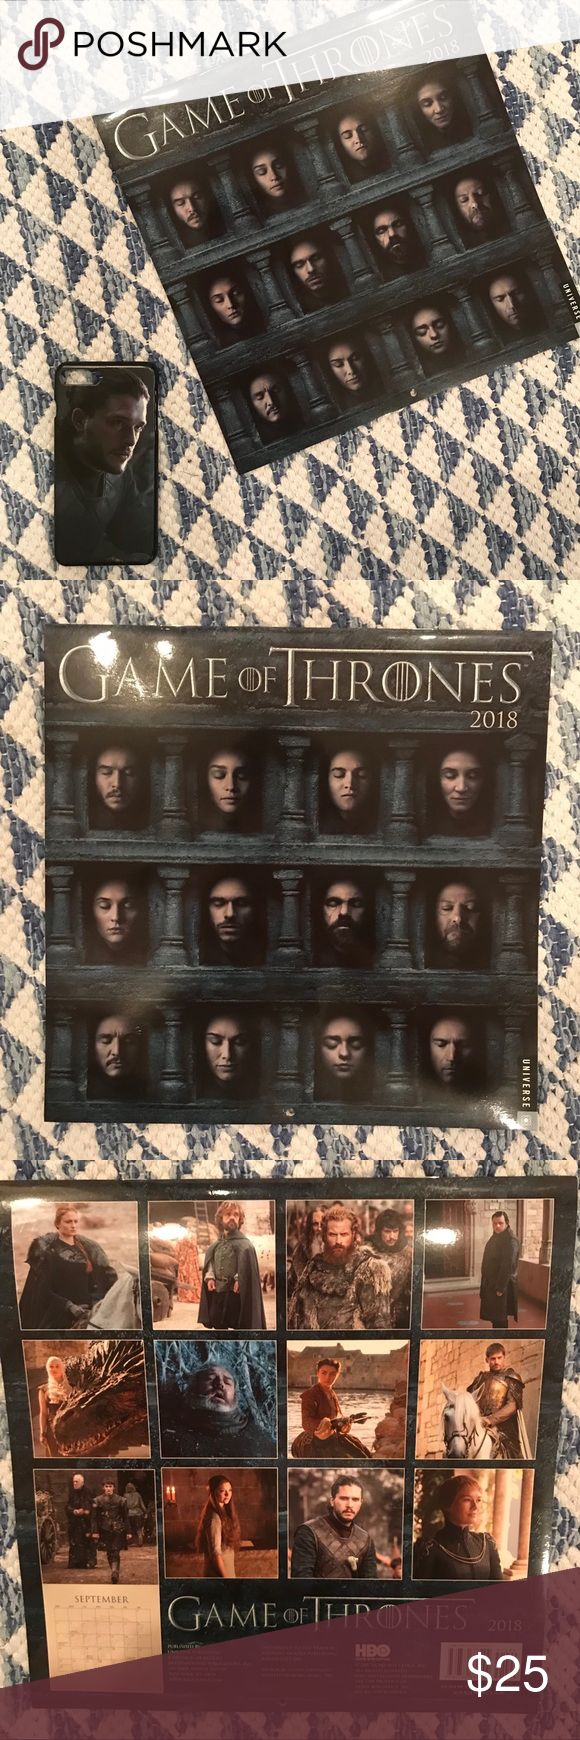 Game of Thrones Tech & Office Bundle NEW GOT 2018 Calendar & Jon Snow iPhone 7 Plus Tech Case  Calendar  - no marks, tears, or folds - Brand New out of plastic wrapping   Jon Snow Tech Case - fits iPhone 6, 7 and 8 Pluses  - plastic Tech Case - photo of Jon Snow from Season 7/last season HBO Accessories Phone Cases